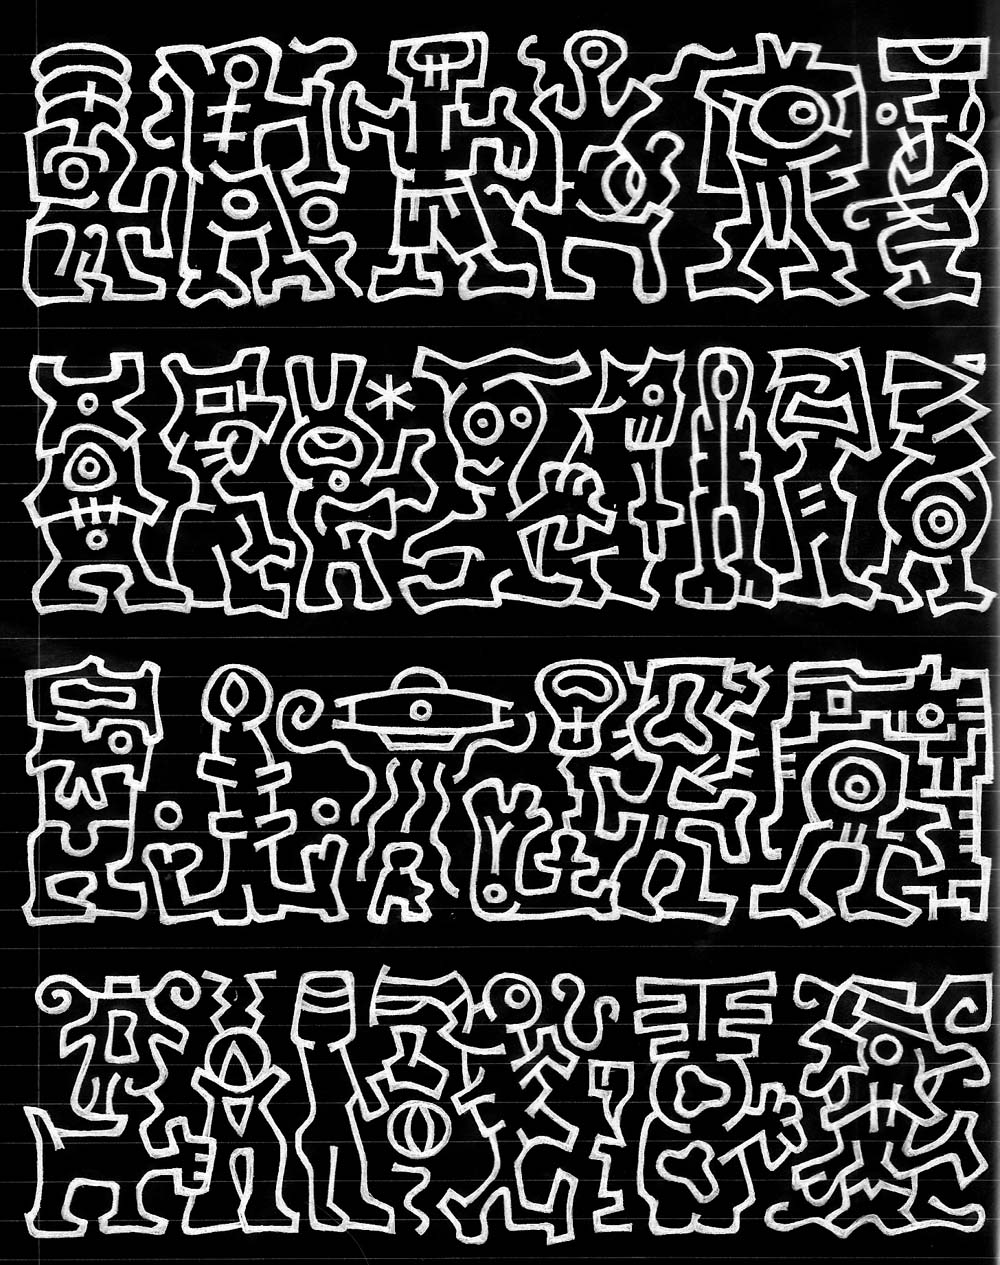 asemic writing - sequence of glyphs, like more complex versions of rongorongo